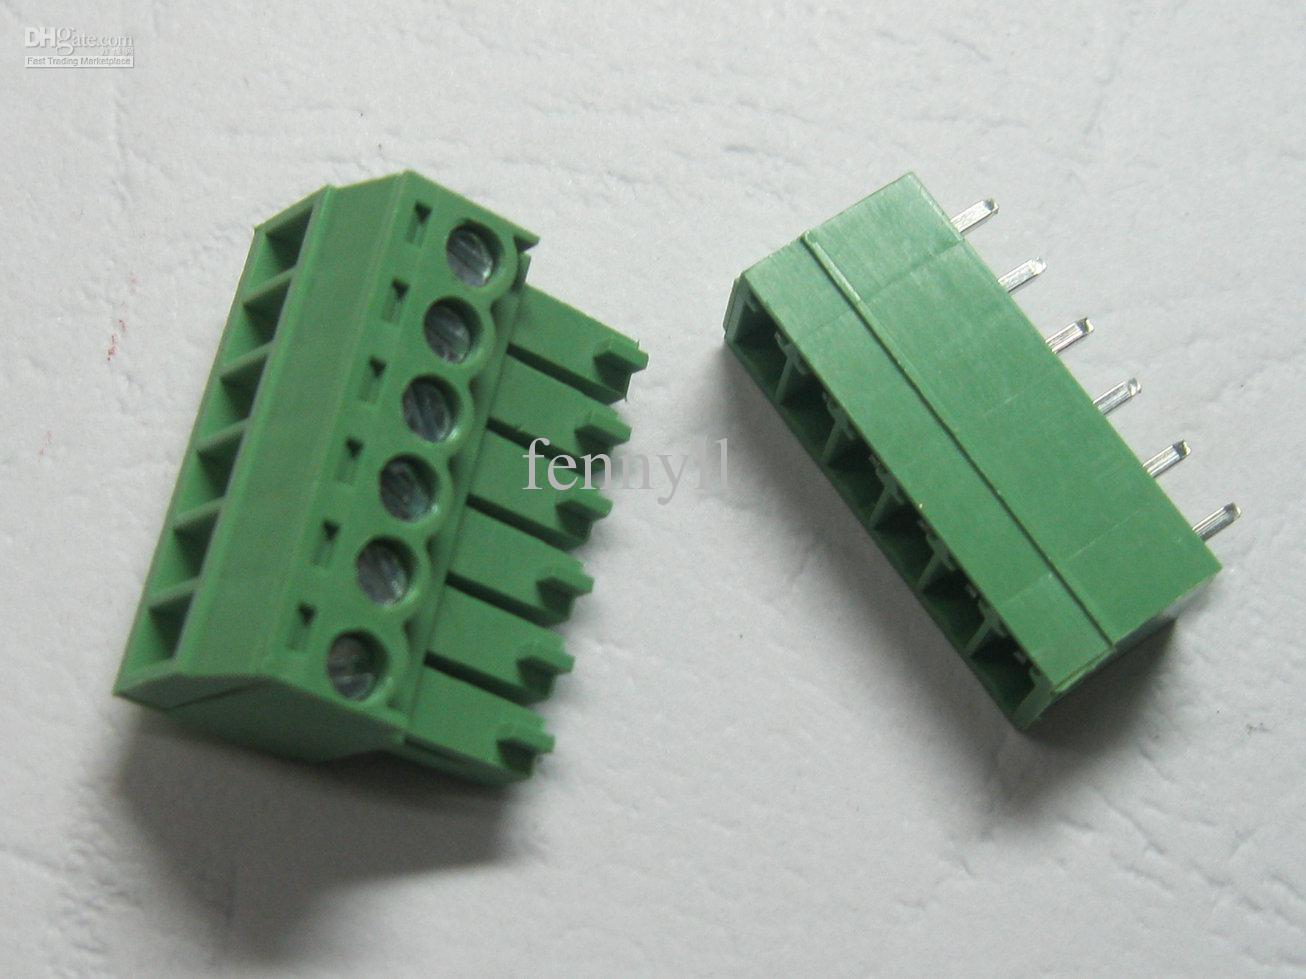 30 Pcs Green 6pin 3.5mm Screw Terminal Block Connector Pluggable Type High Quality HOT Sale